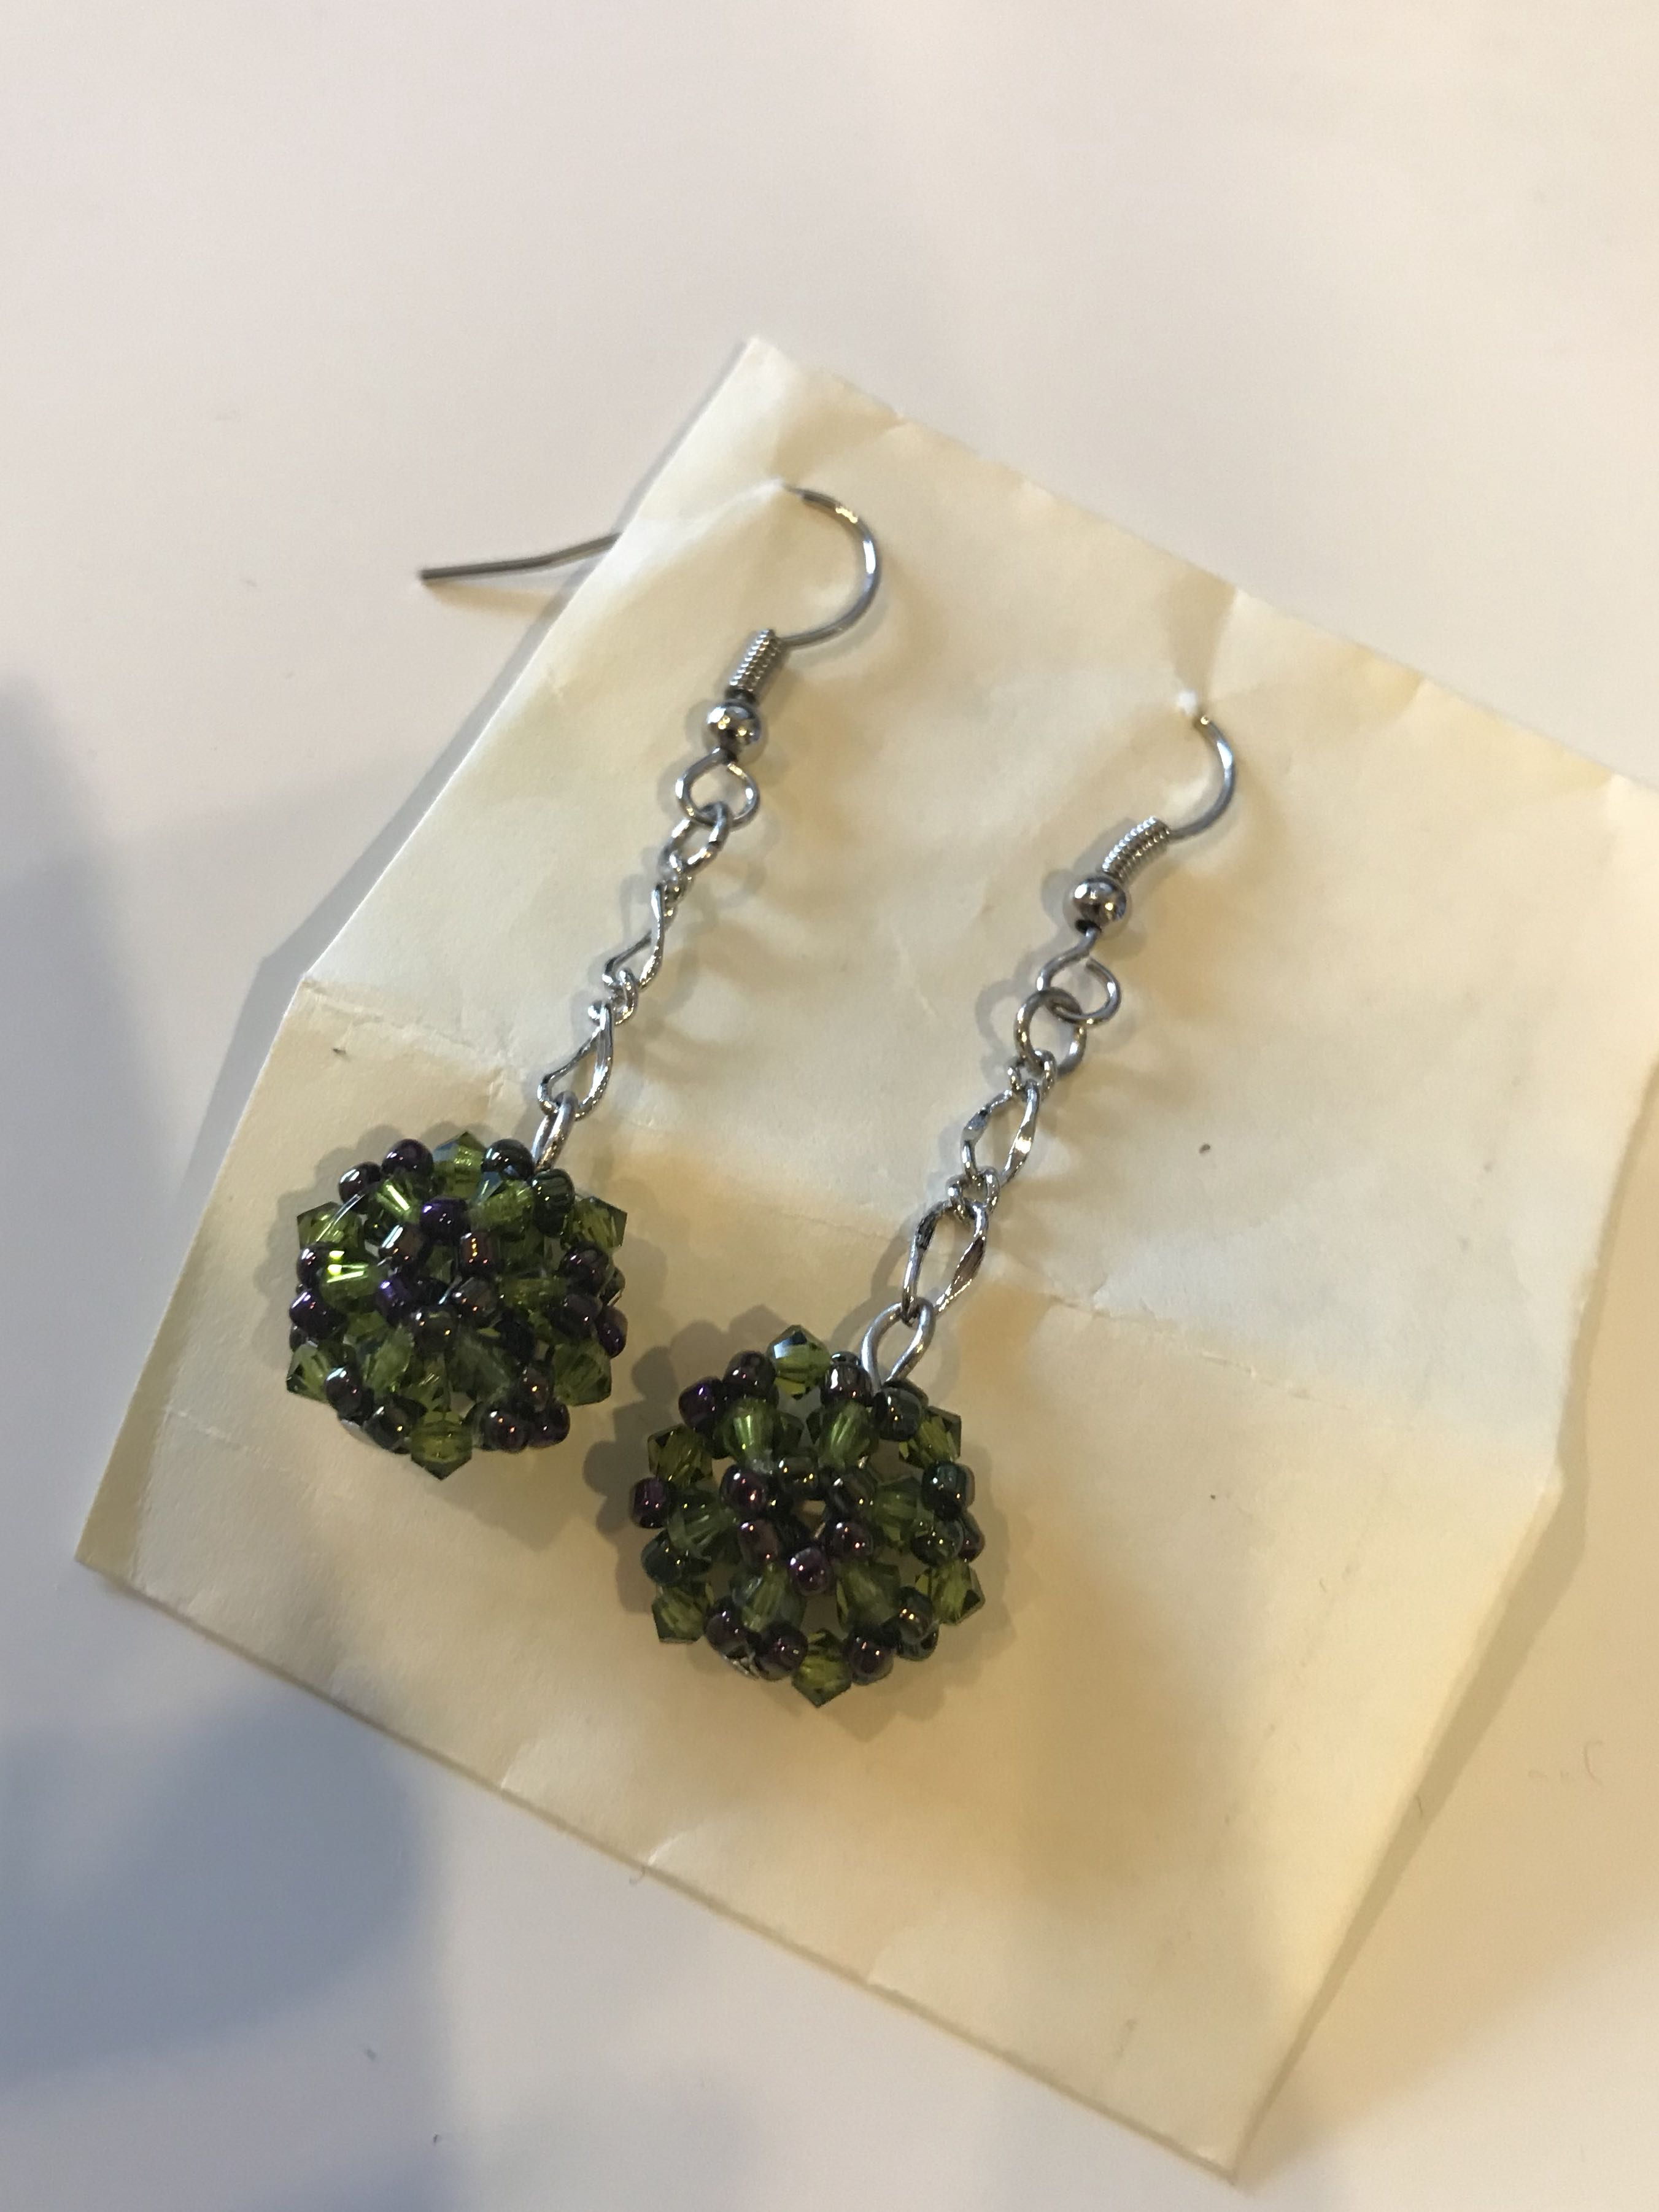 Homemade handcrafted Korean earrings